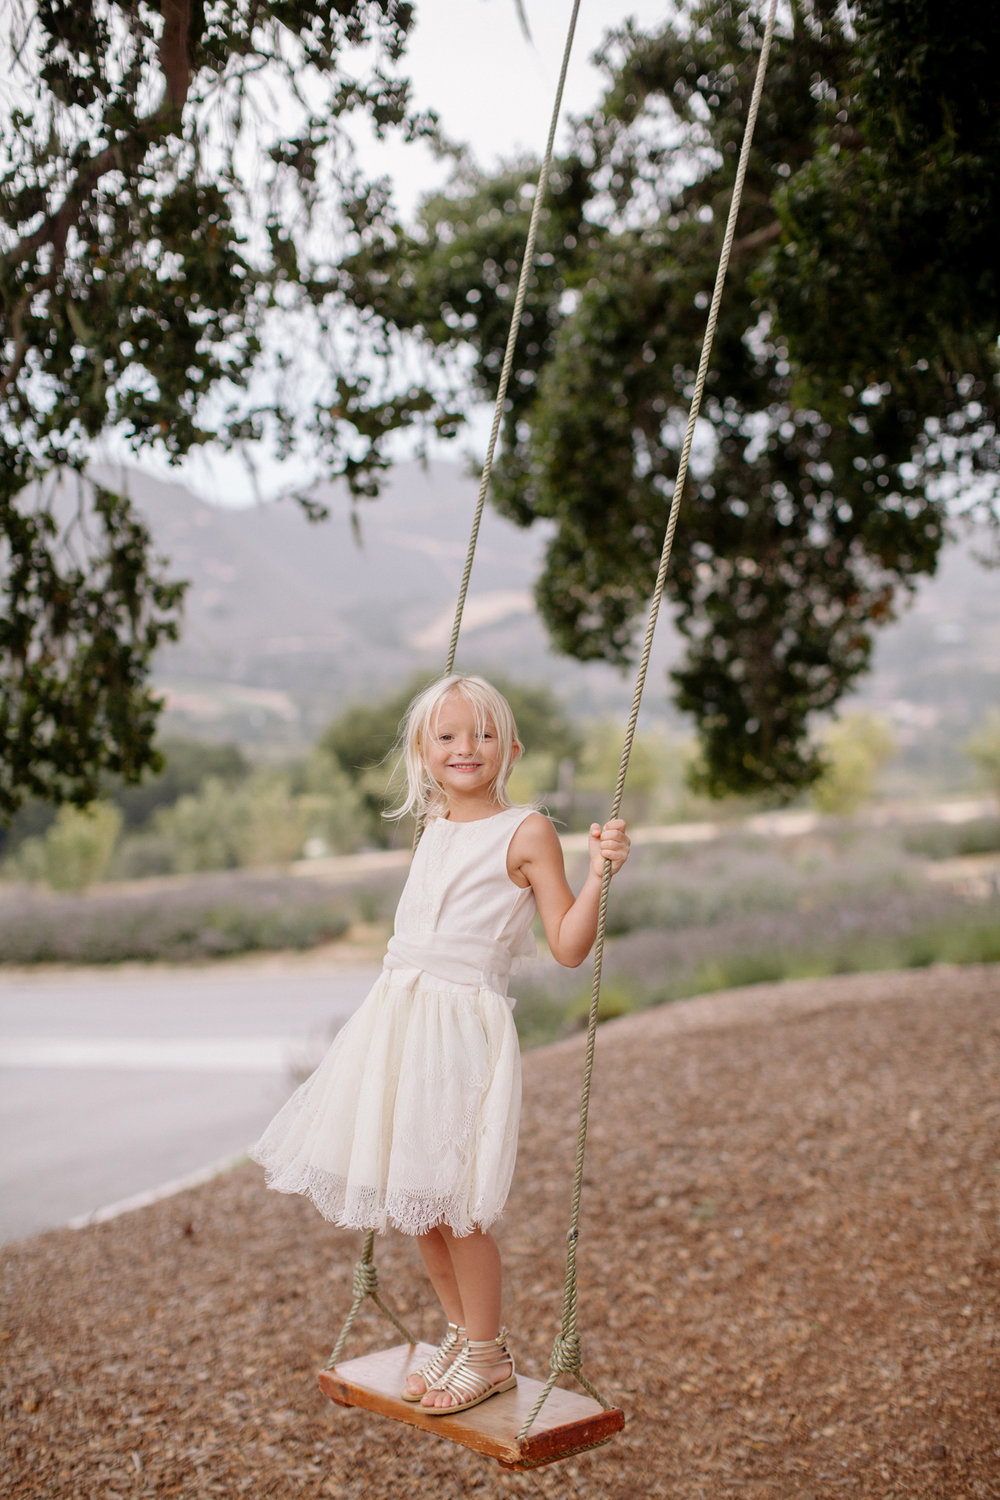 39-girl-on-swing.jpg